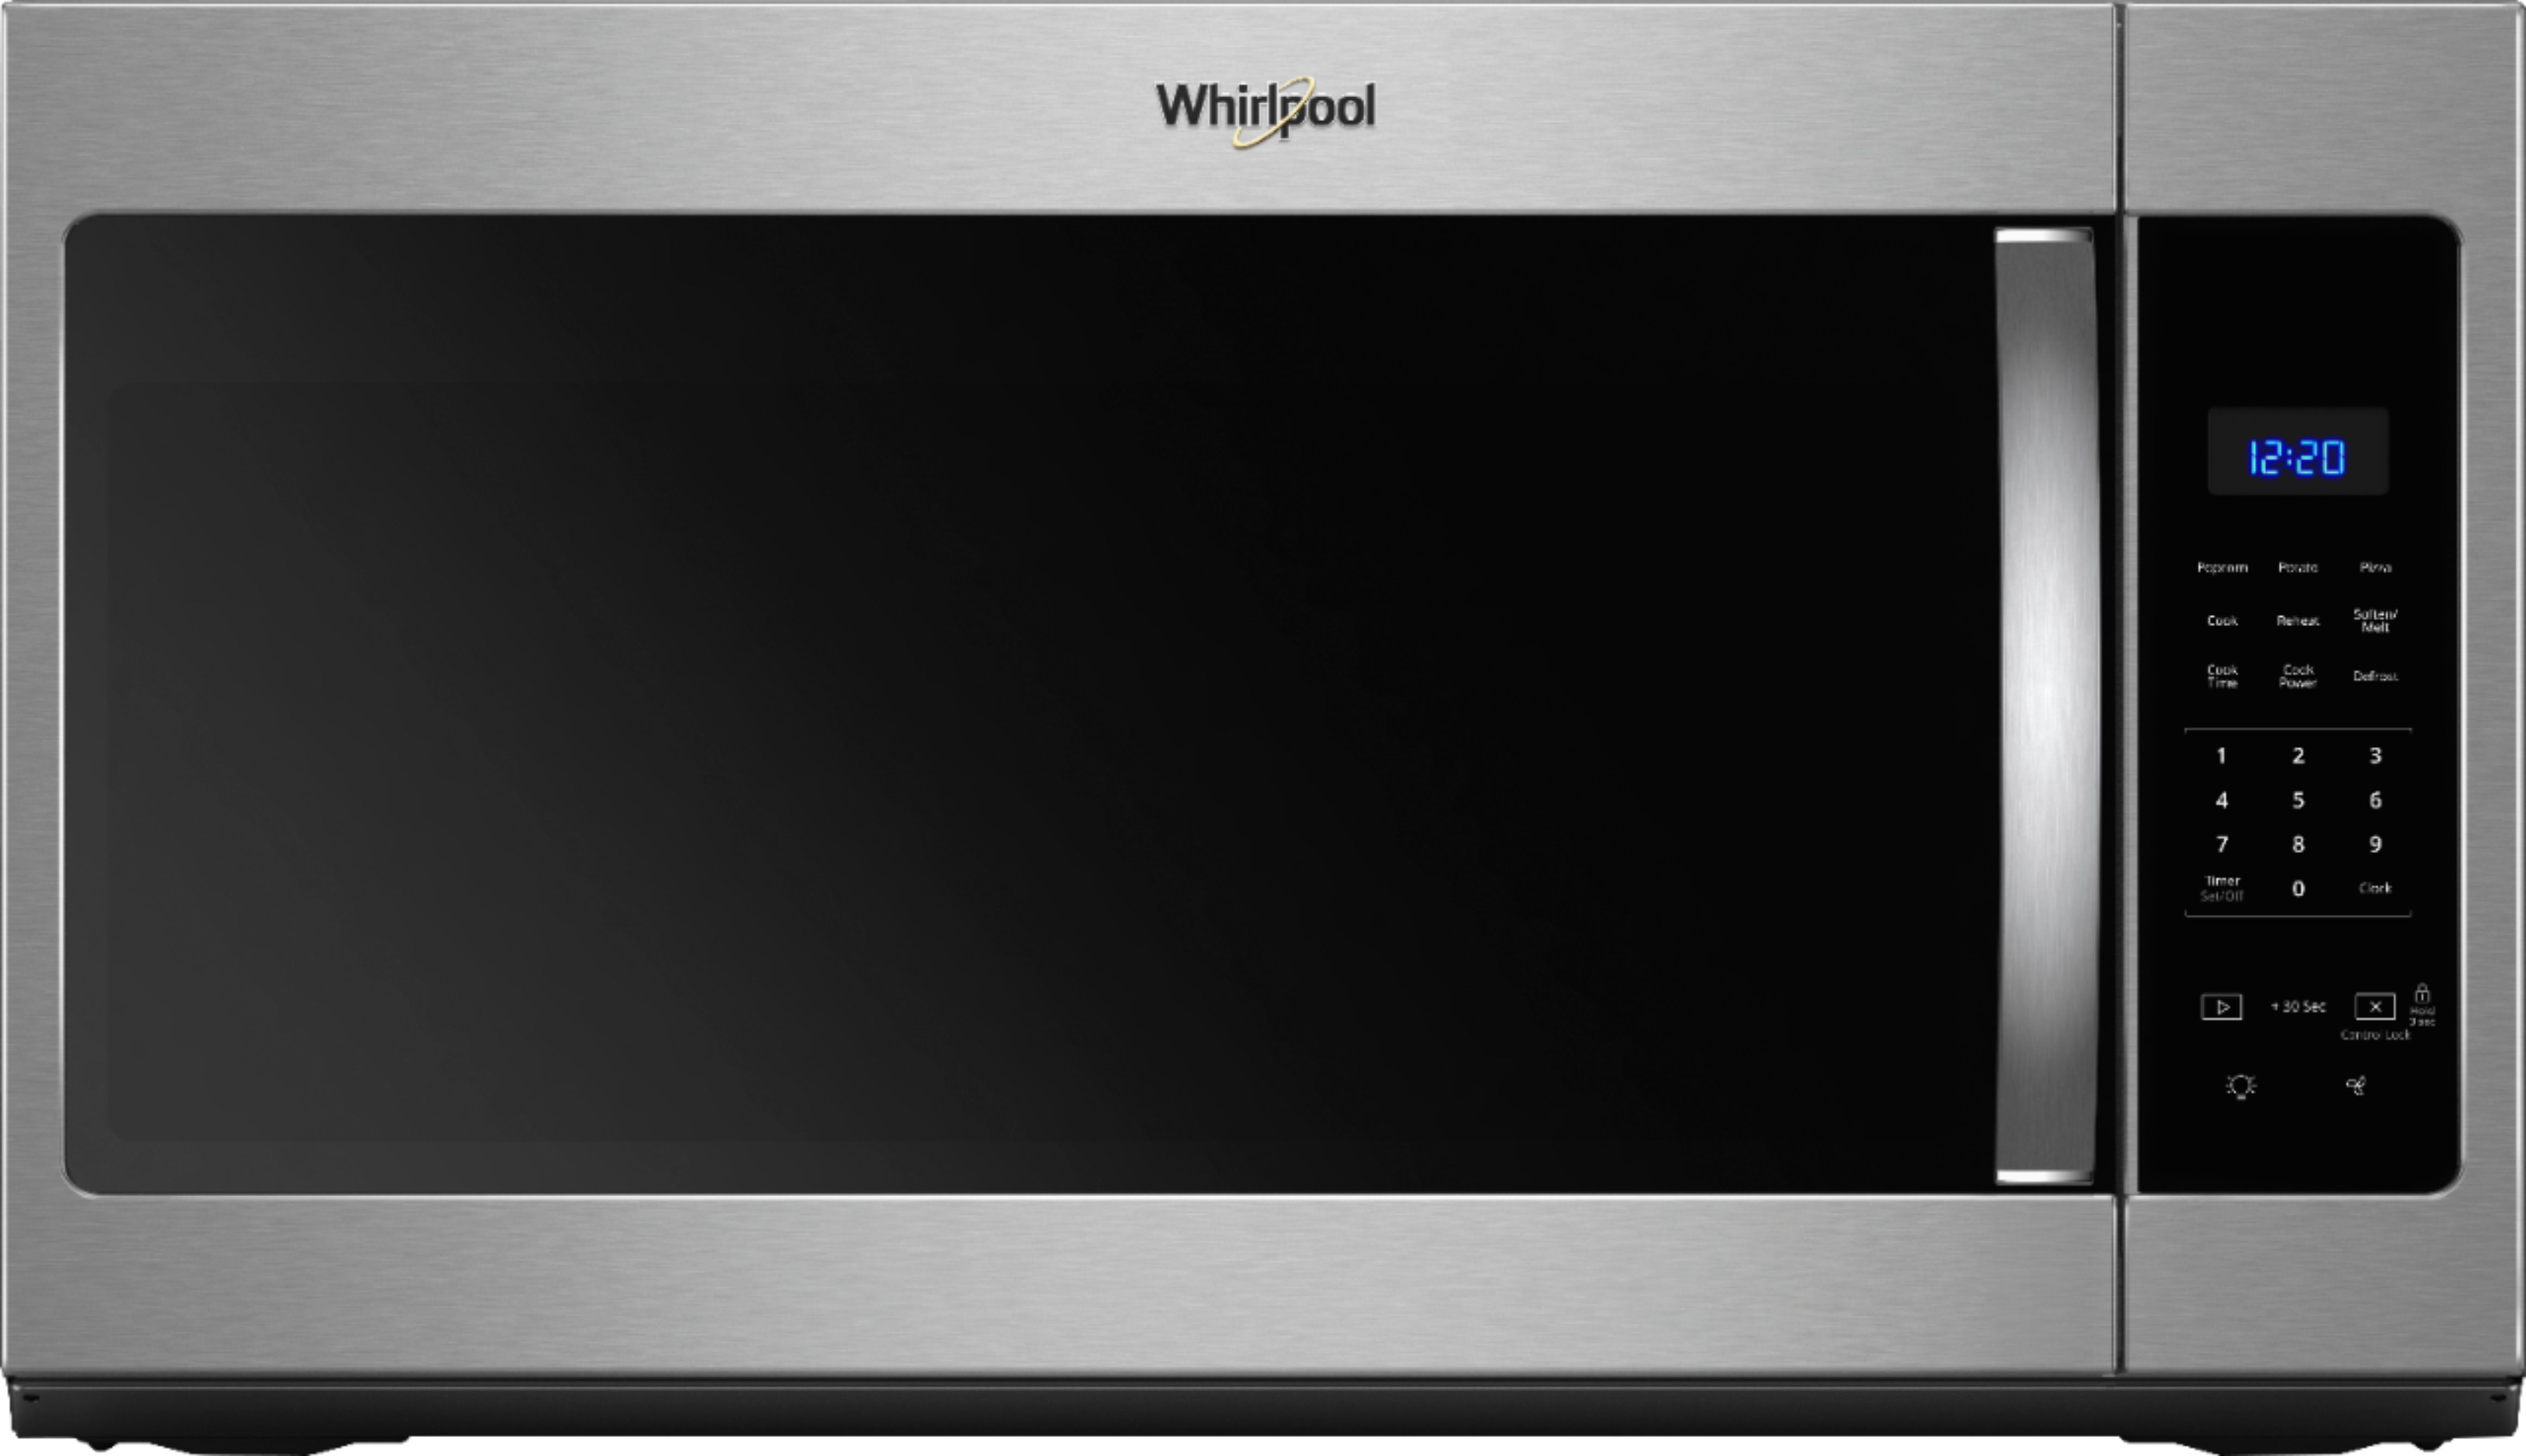 whirlpool 1 7 cu ft over the range microwave stainless steel